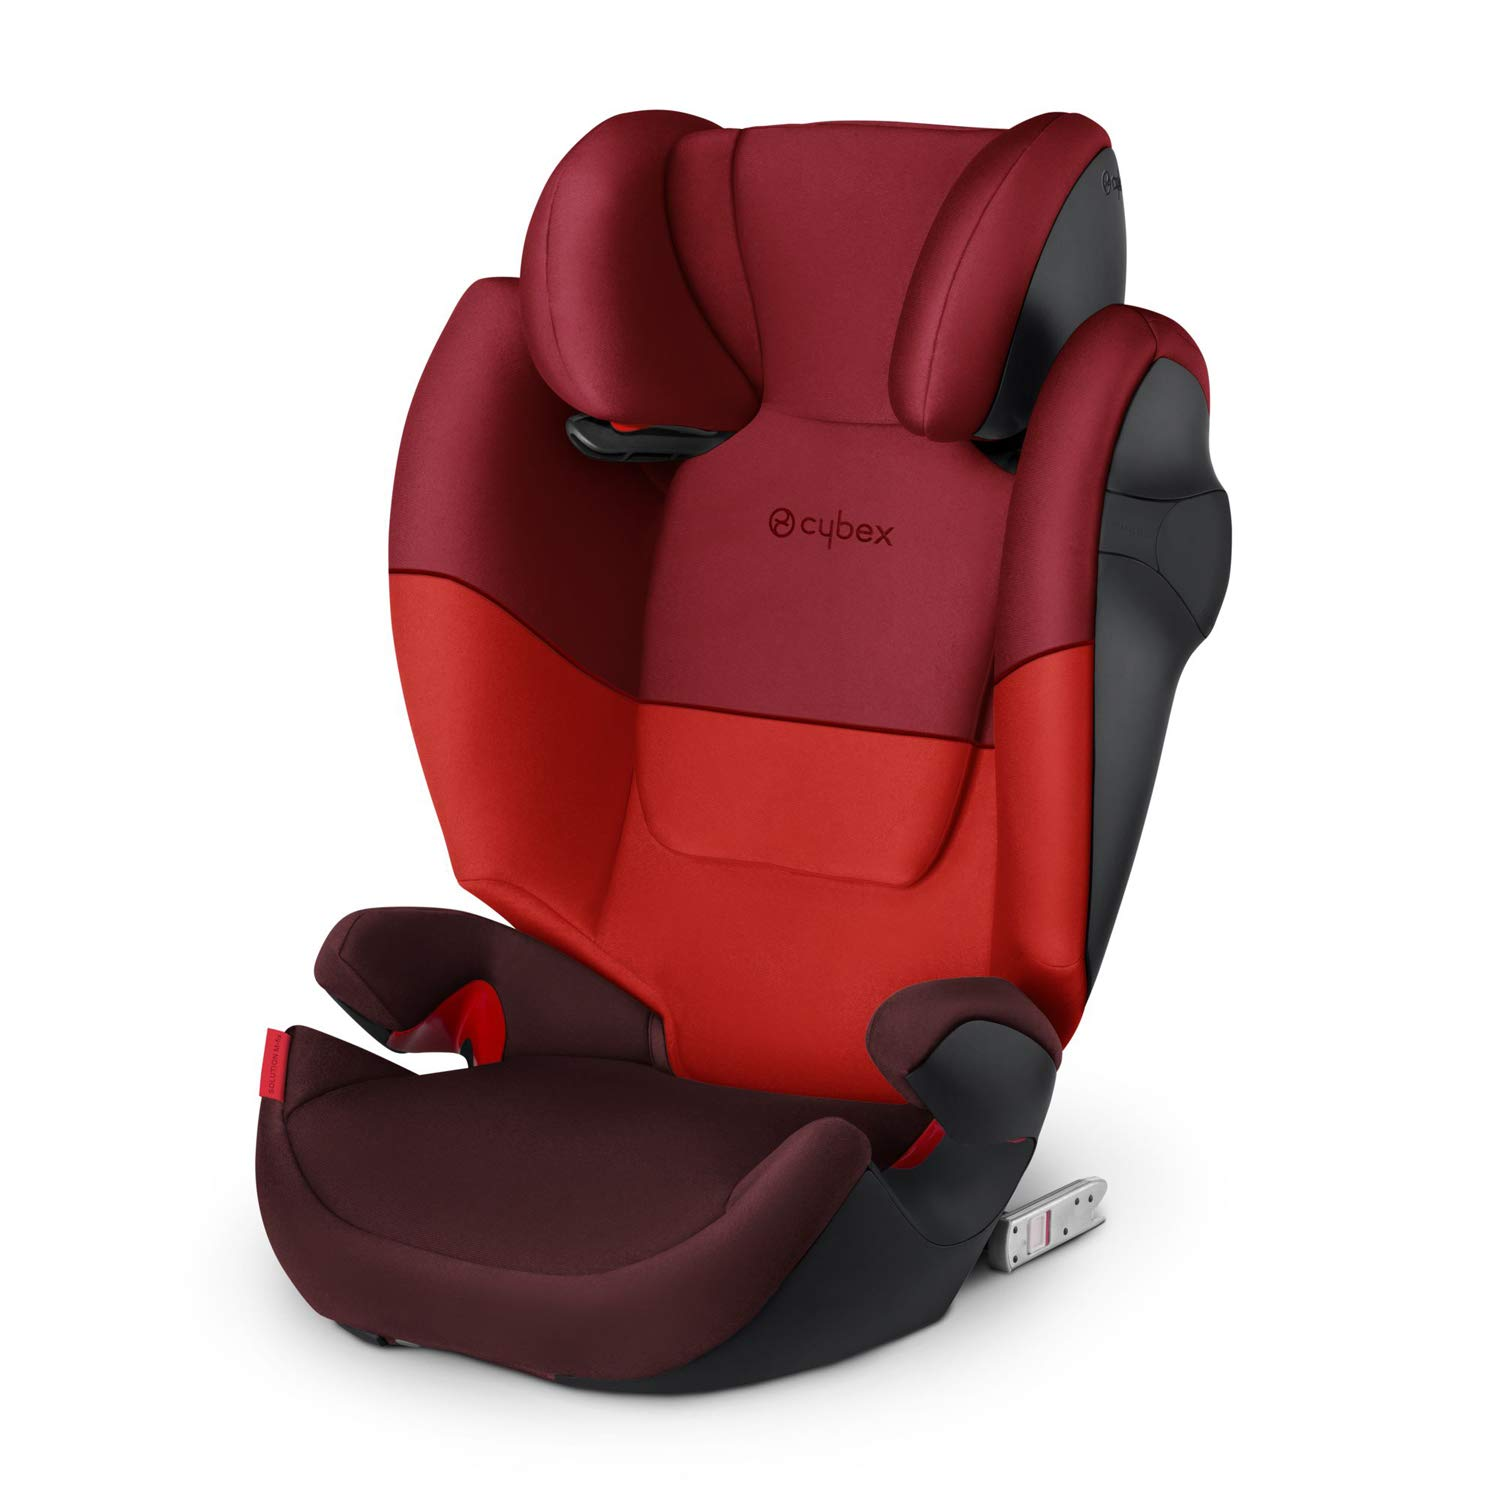 Cybex Silver Solution M-Fix Child's Car Seat, High Back Booster, with Reclining Headrest and ISOFIX Compatible, Group 2/3 (15-36 kg), From Approx 3-12 Years, Rumba Red